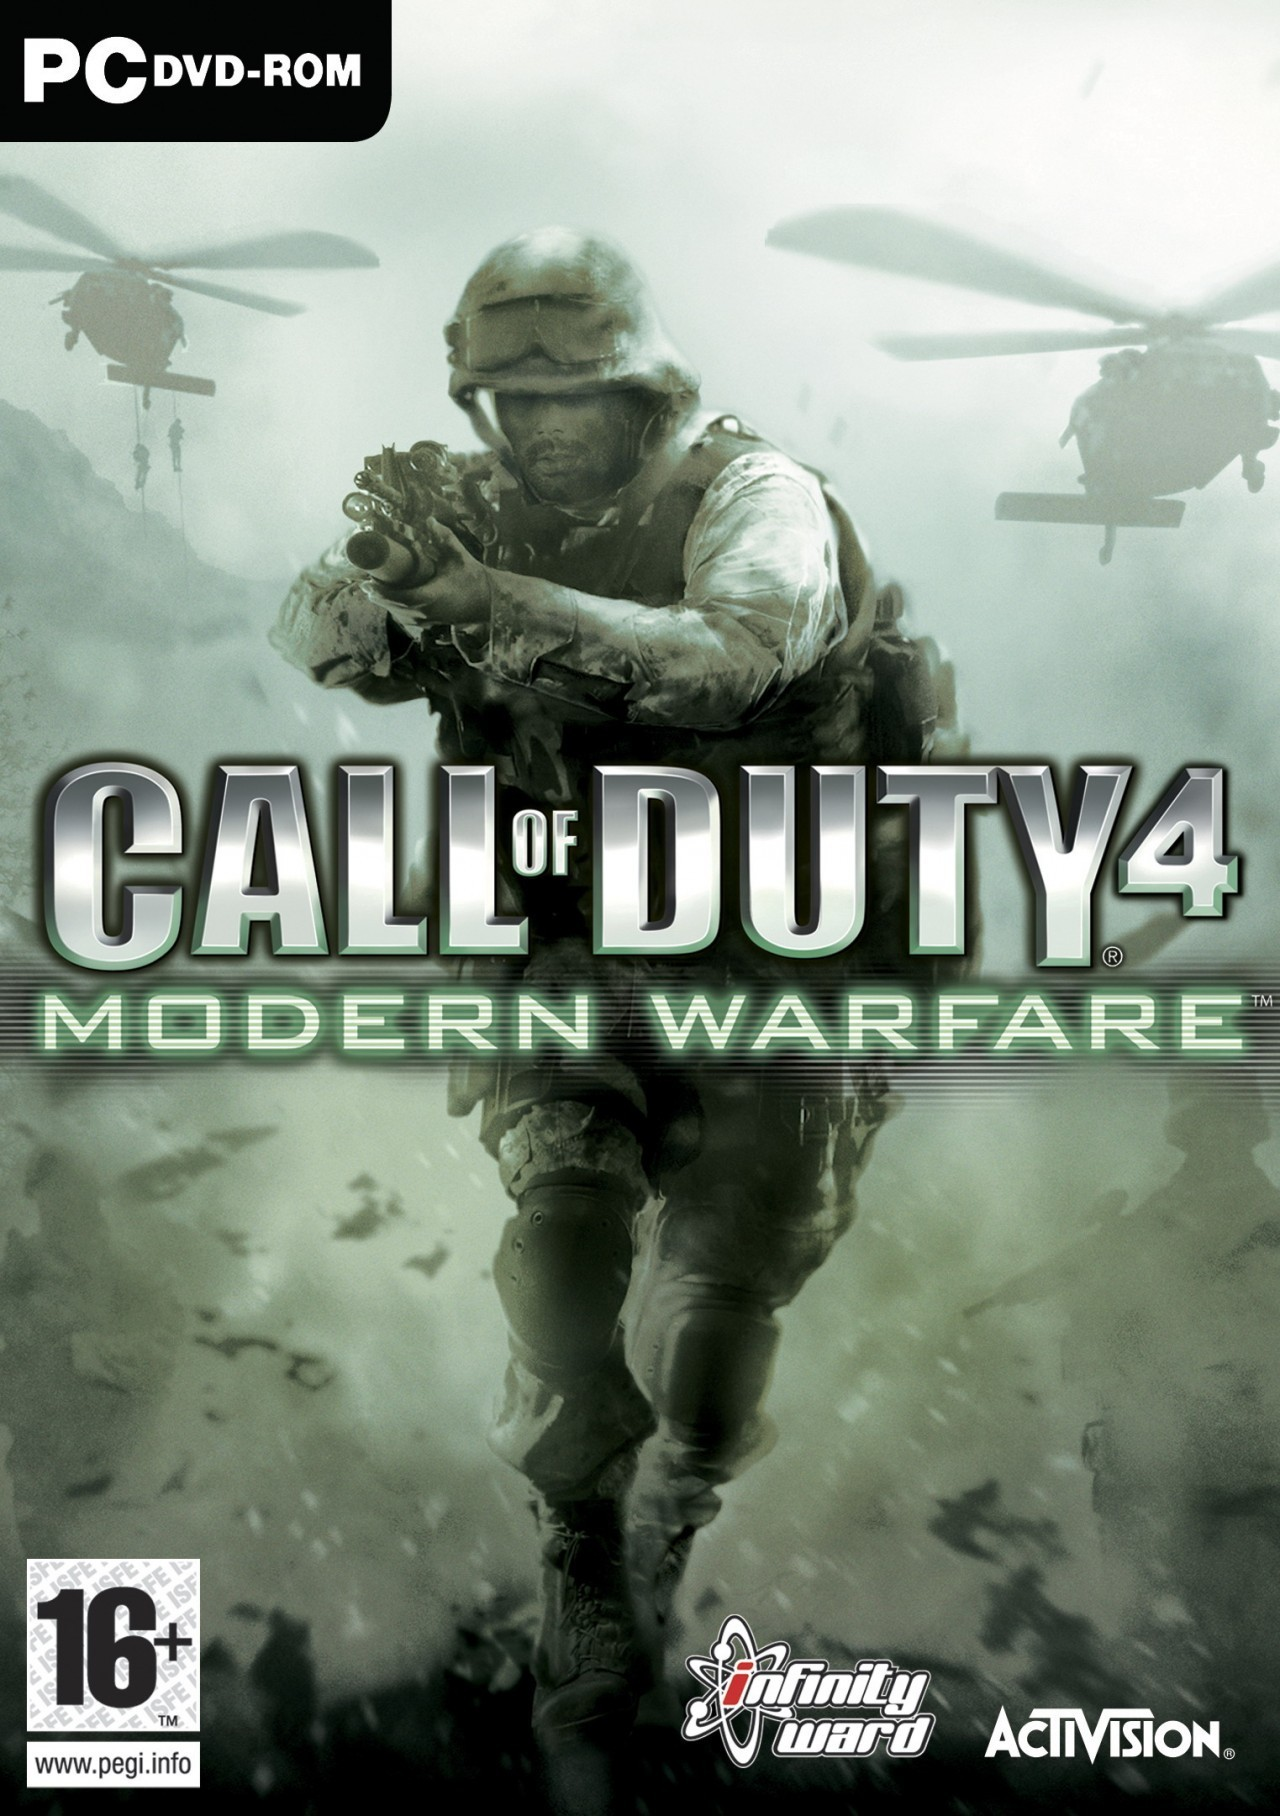 Call of Duty 4 - Modern Warfare v1.4 NoDVD